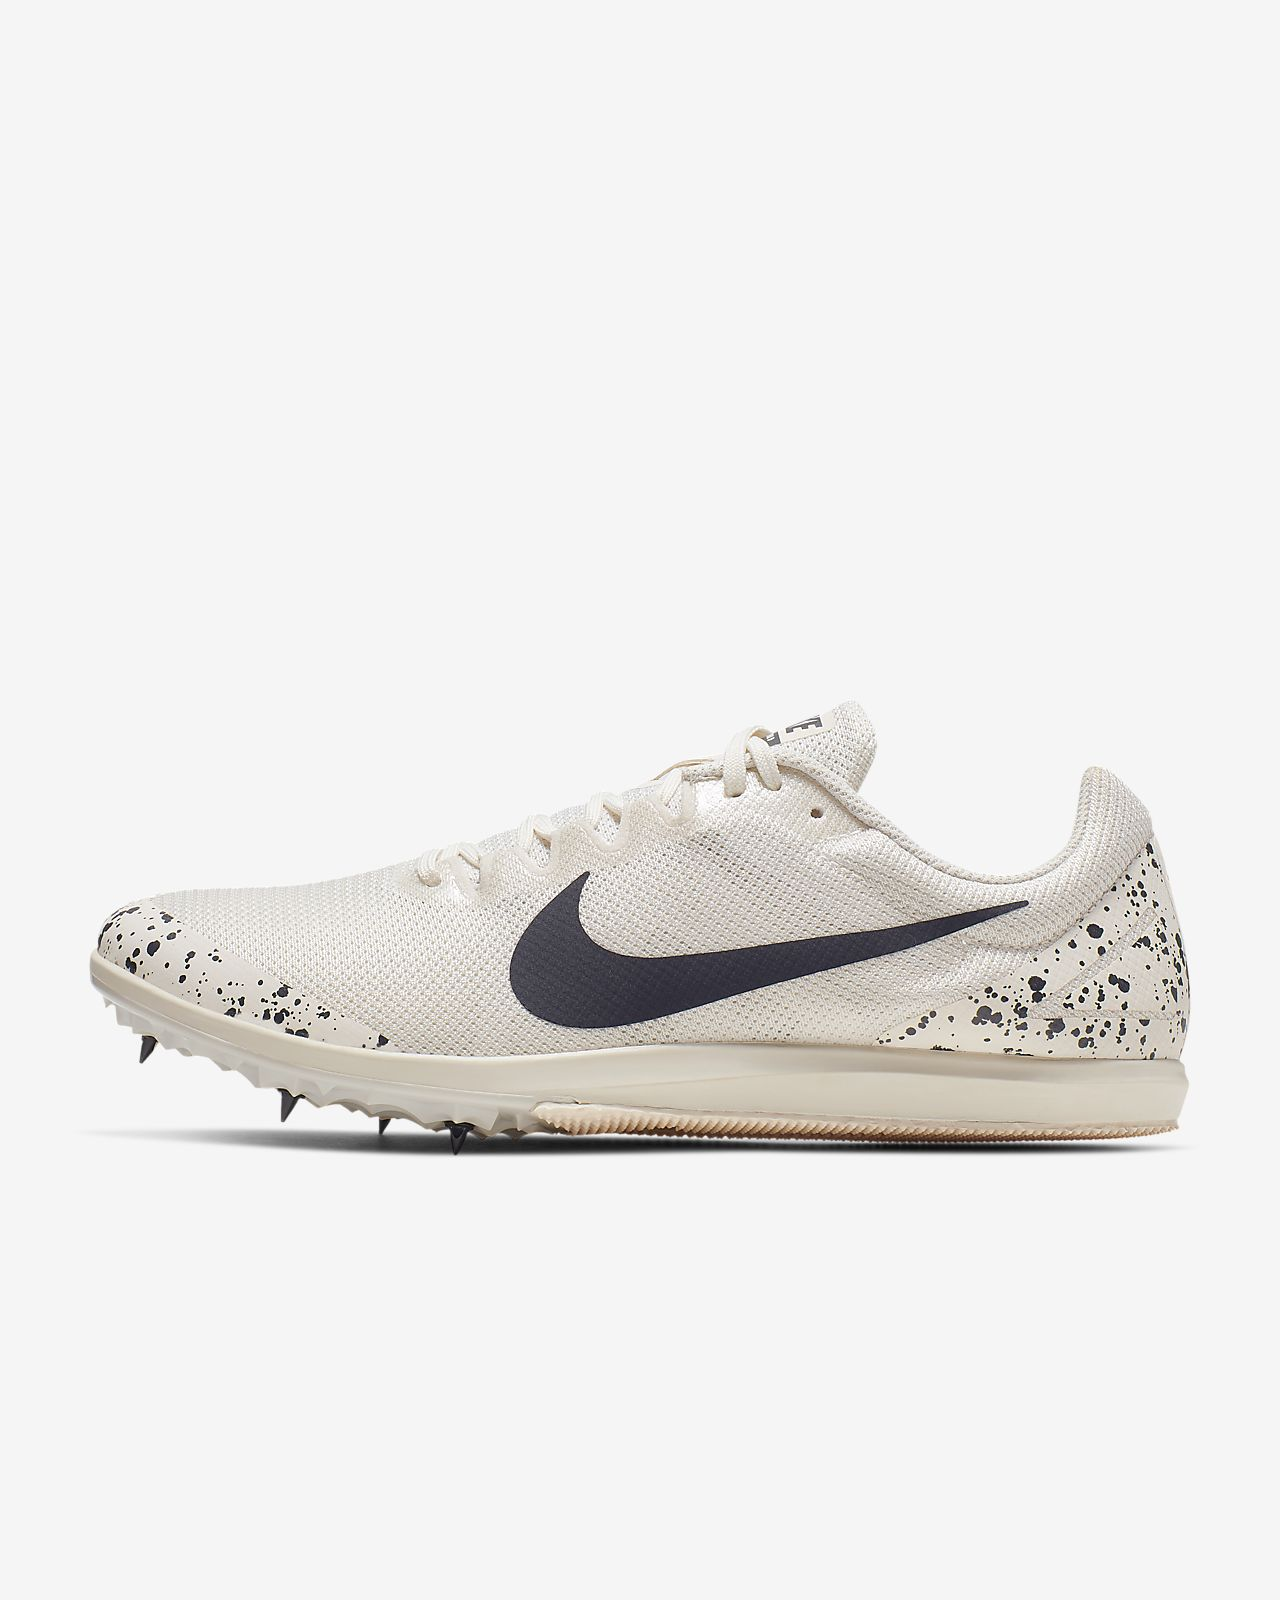 low priced c4bd1 d061c Nike Zoom Rival D 10